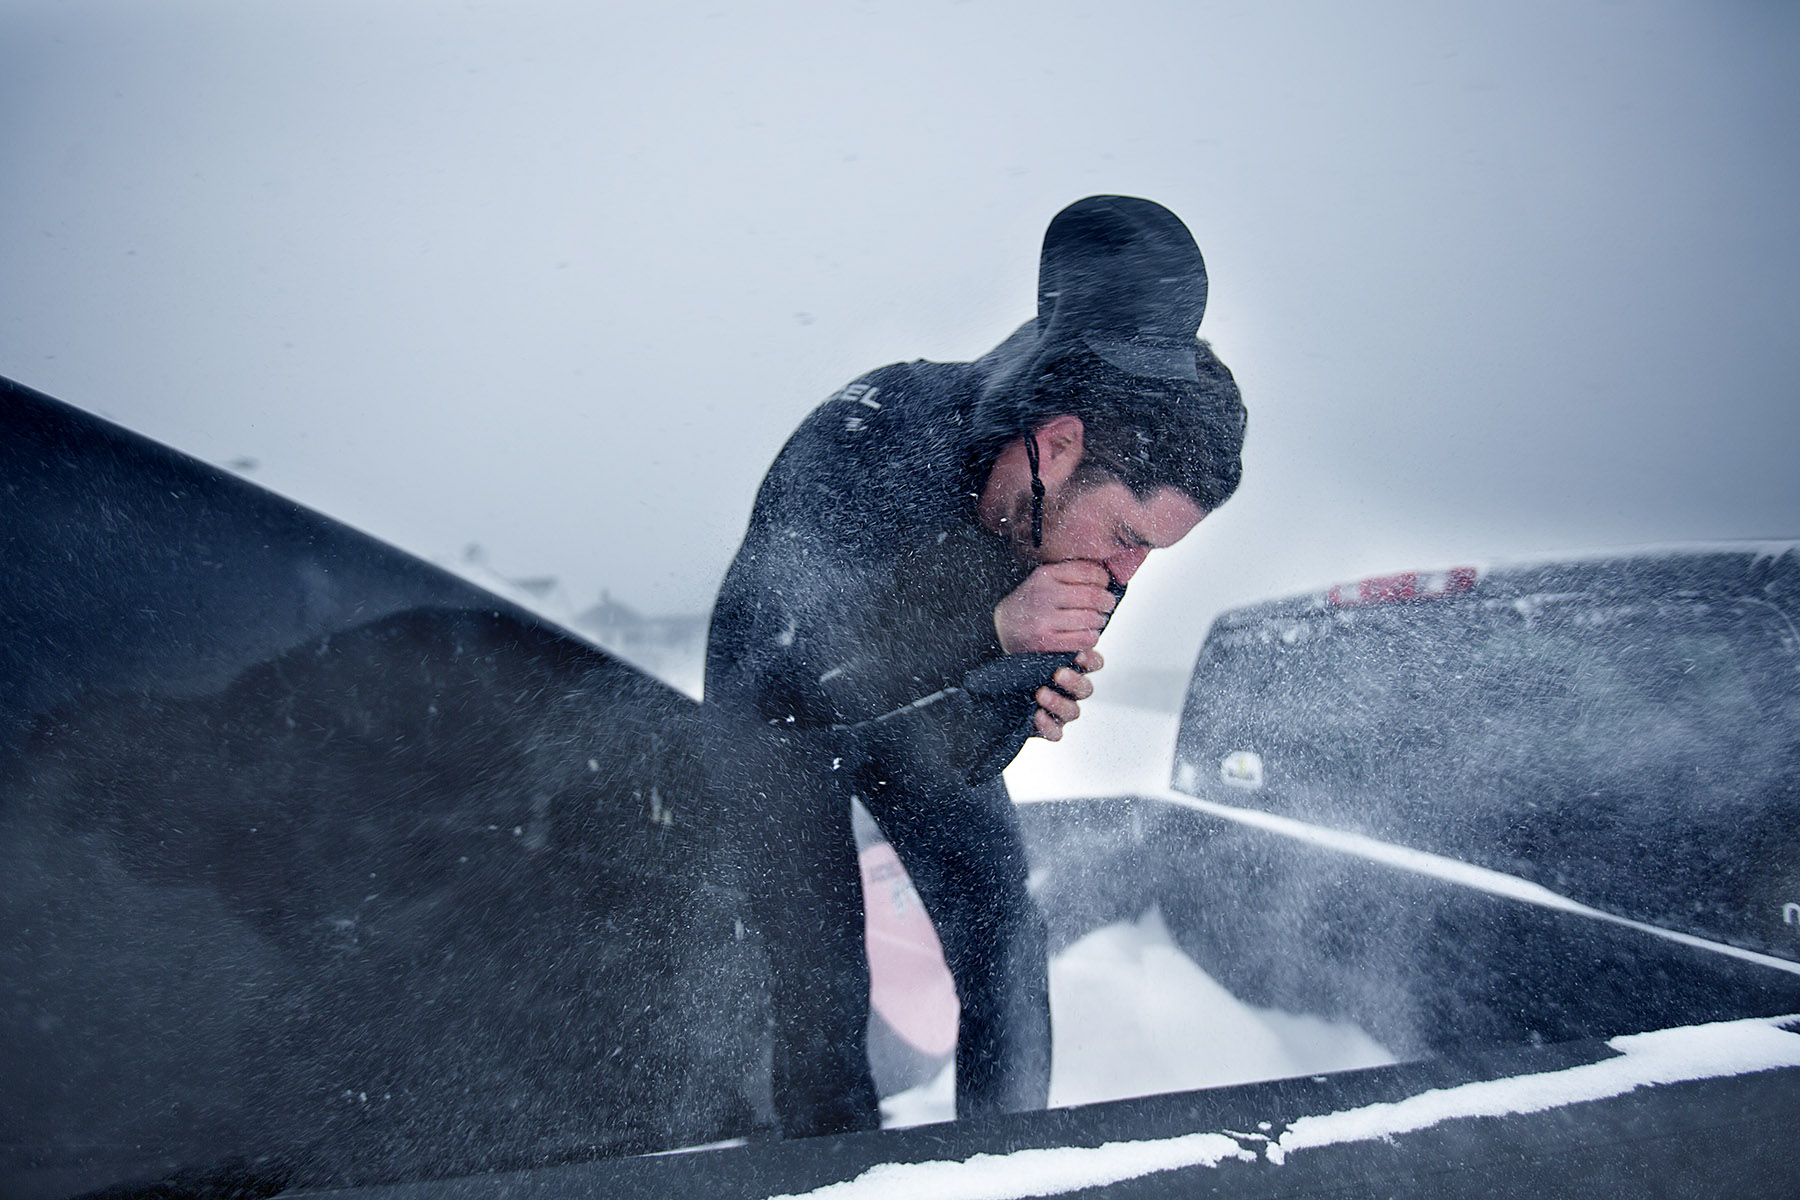 Winter surfing in New England by Boston based commercial lifestyle photographer Brian Nevins